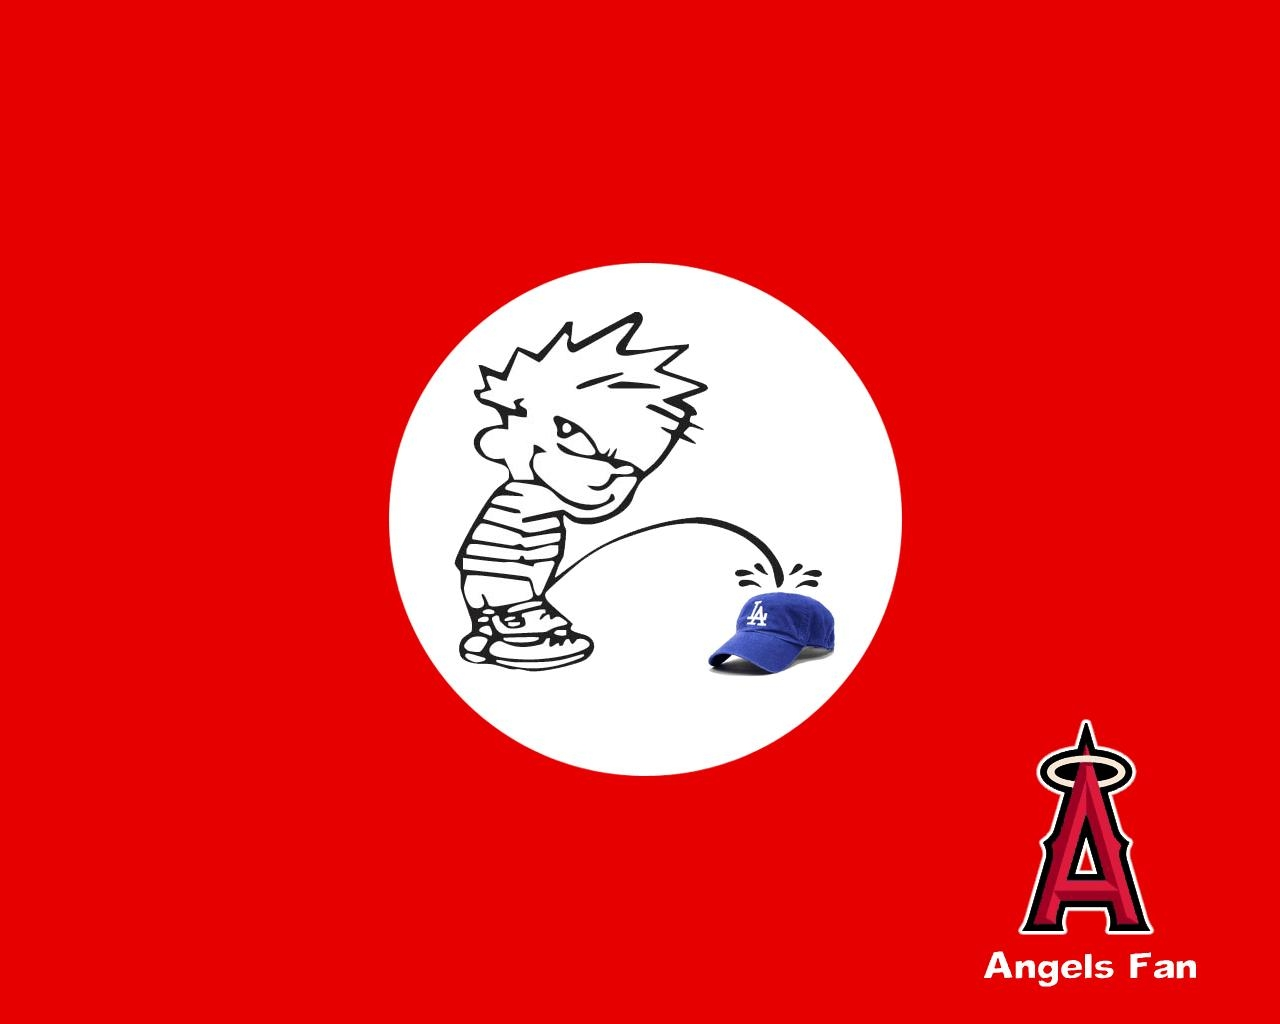 Angeles Angels of Anaheim wallpapers Los Angeles Angels of Anaheim 1280x1024